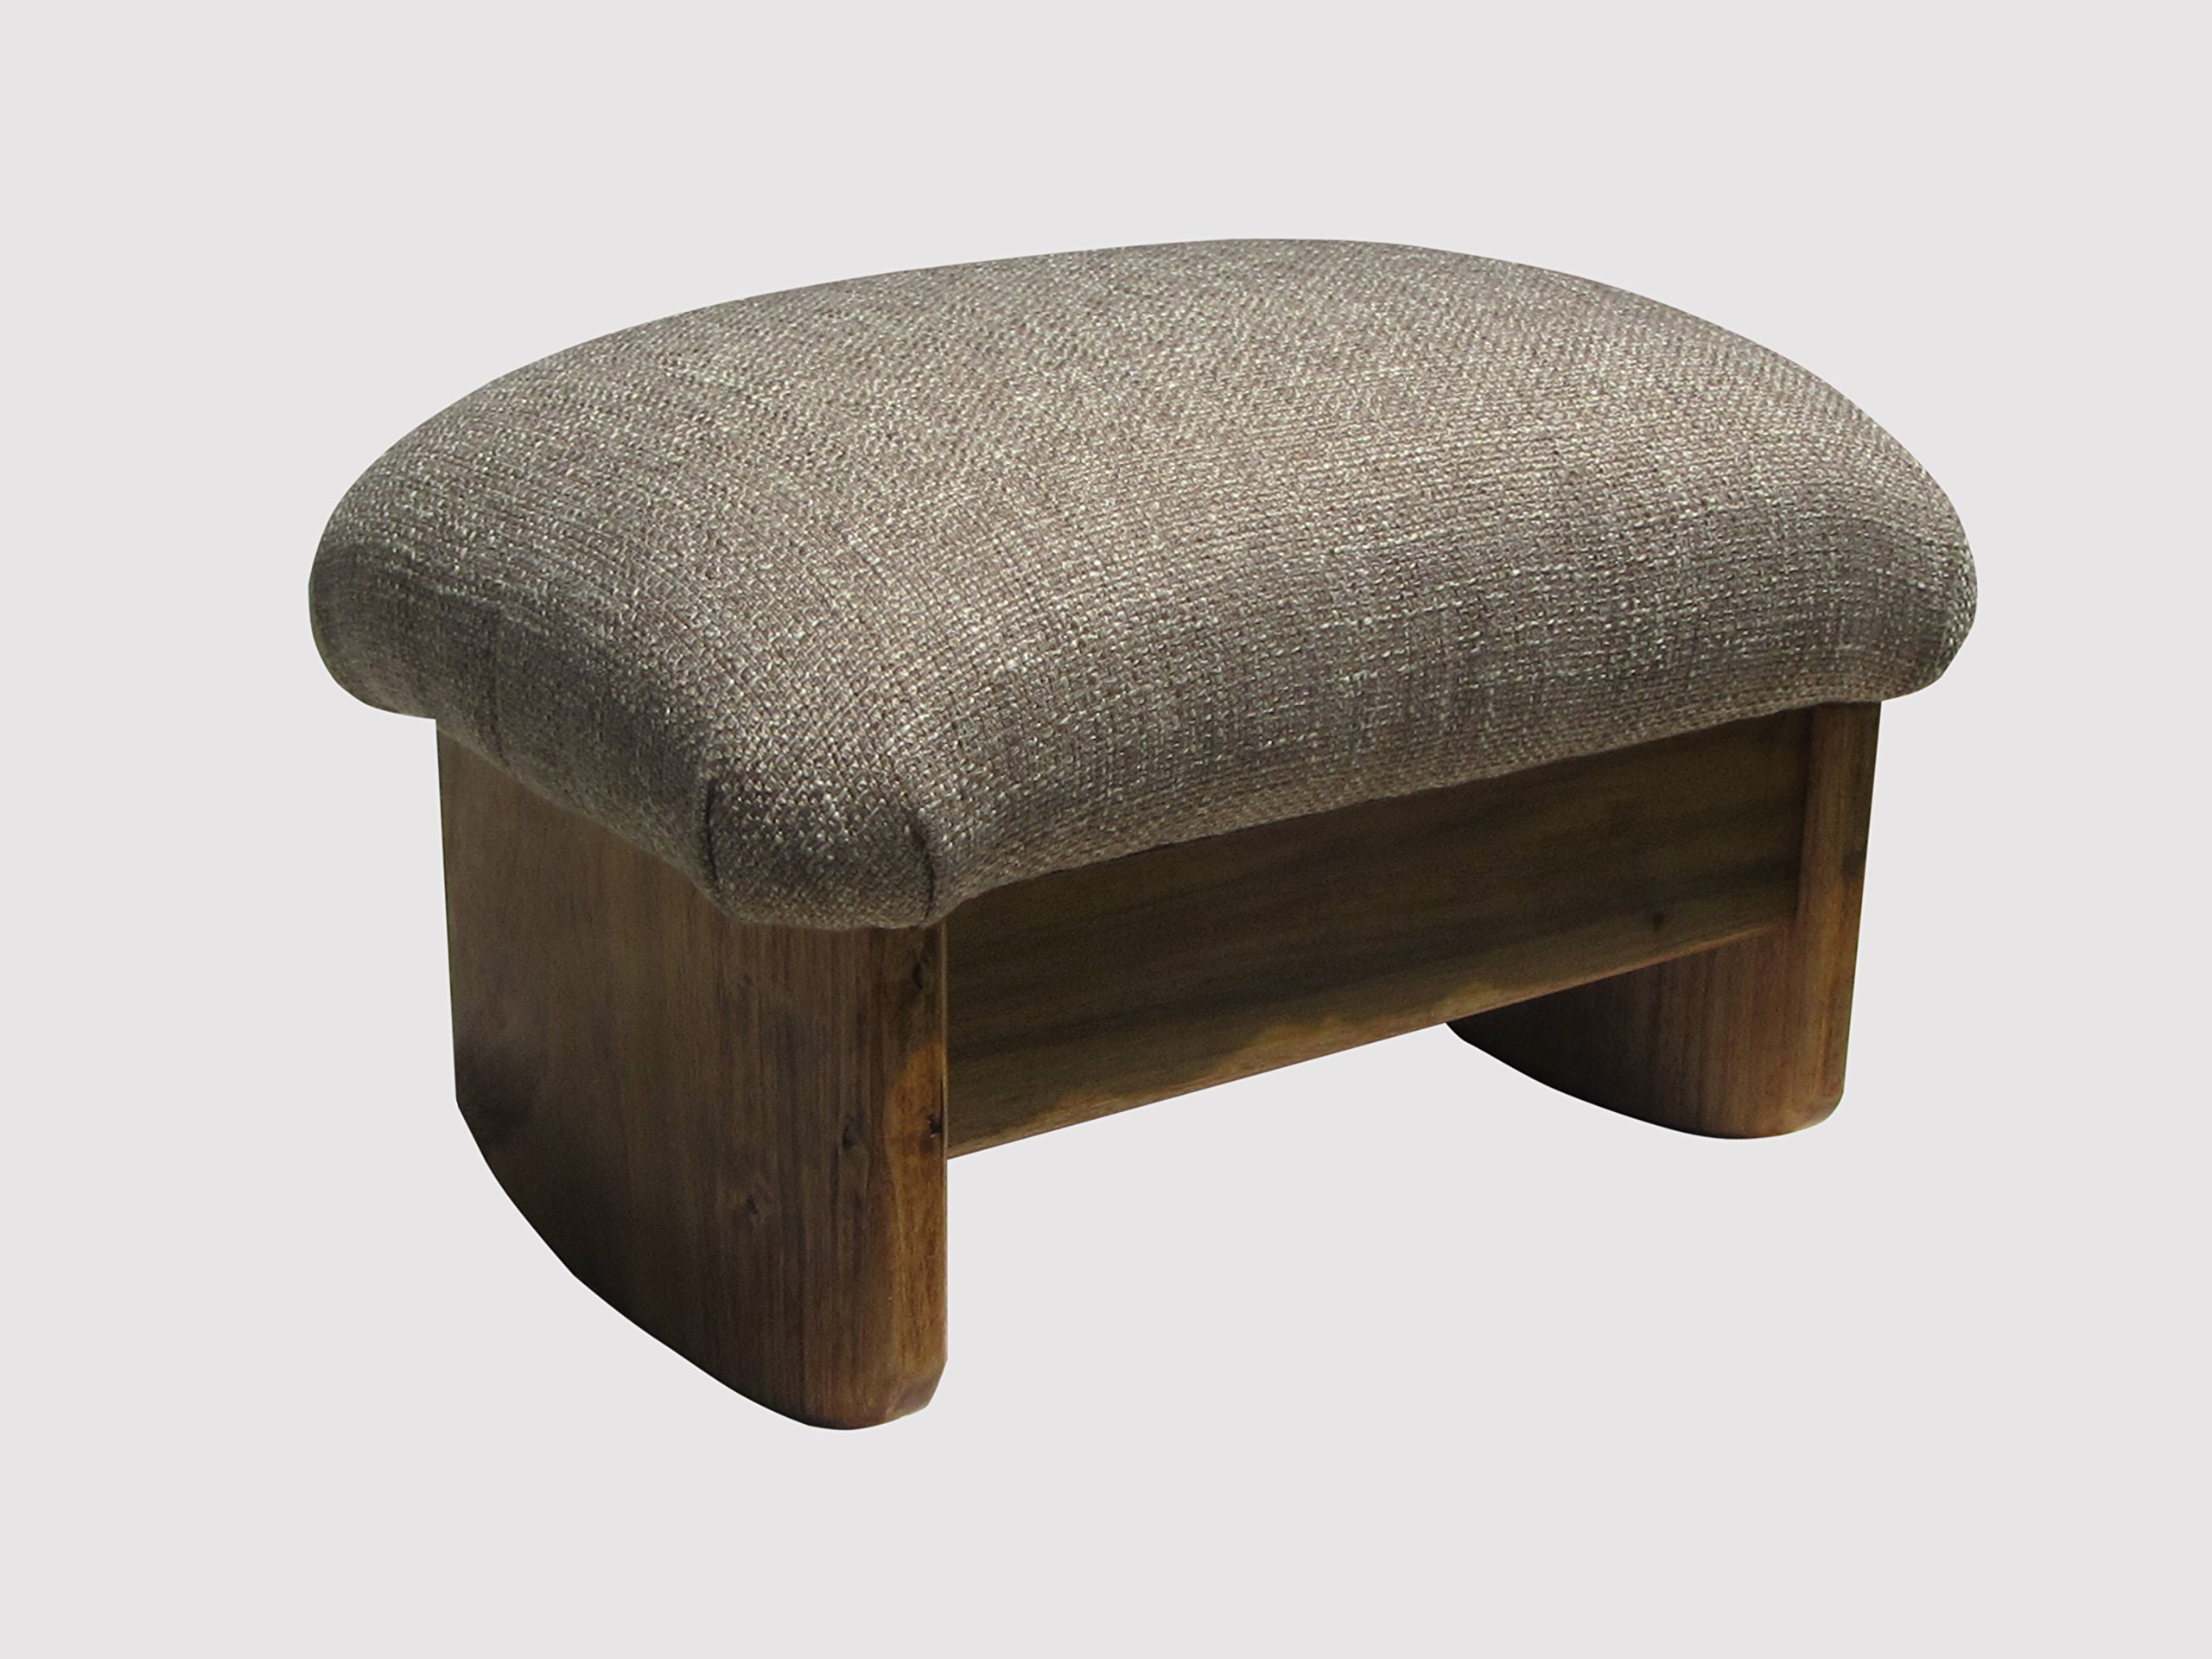 Rocking Padded Foot Stool 9'' Tall Maple Stain (Made in the USA) (Desert Sand) by KR Ideas